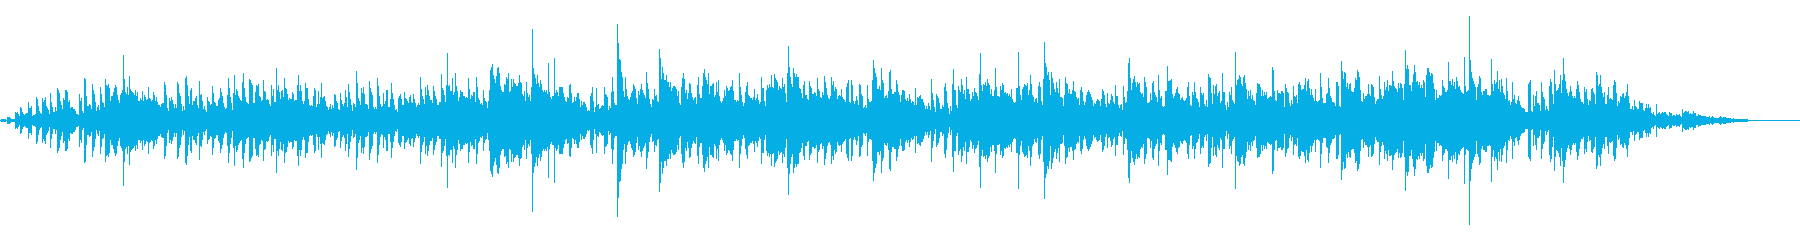 Guitar ambient with a transparent tone's reproduced waveform